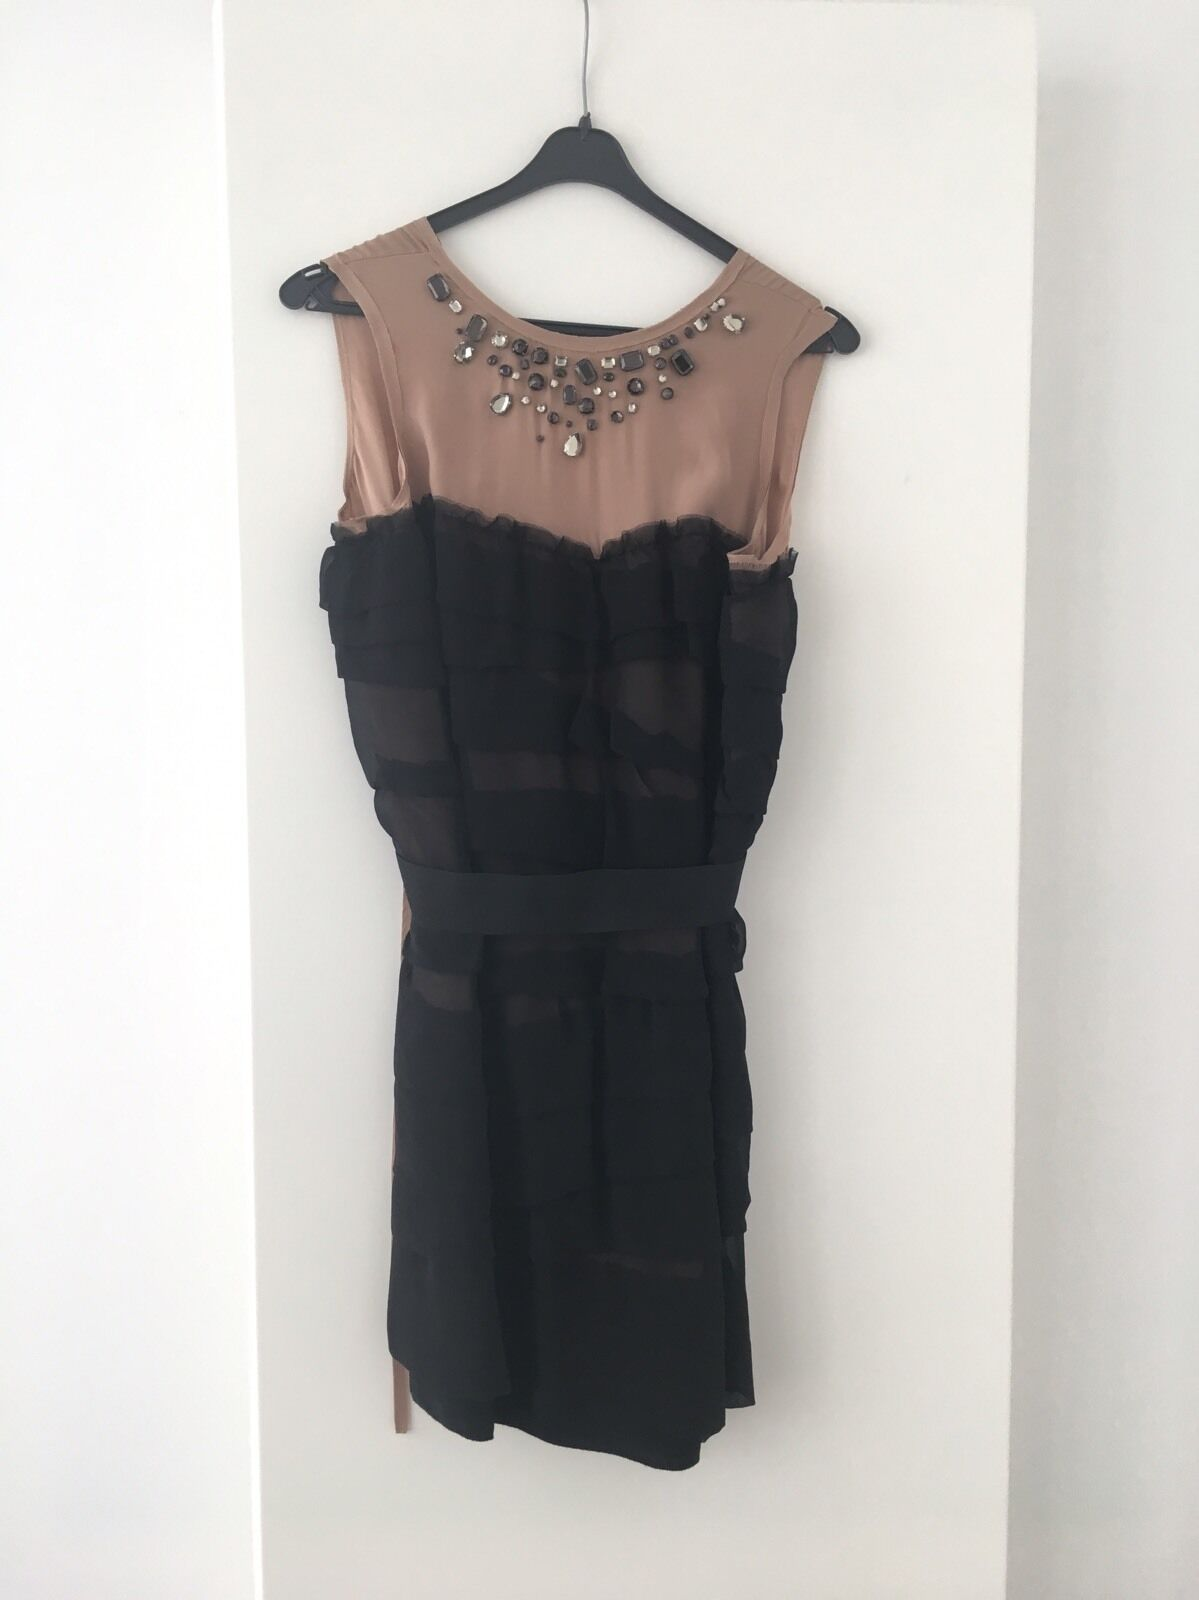 Lanvin For H&M Dress  , Size 36, New Without Tag